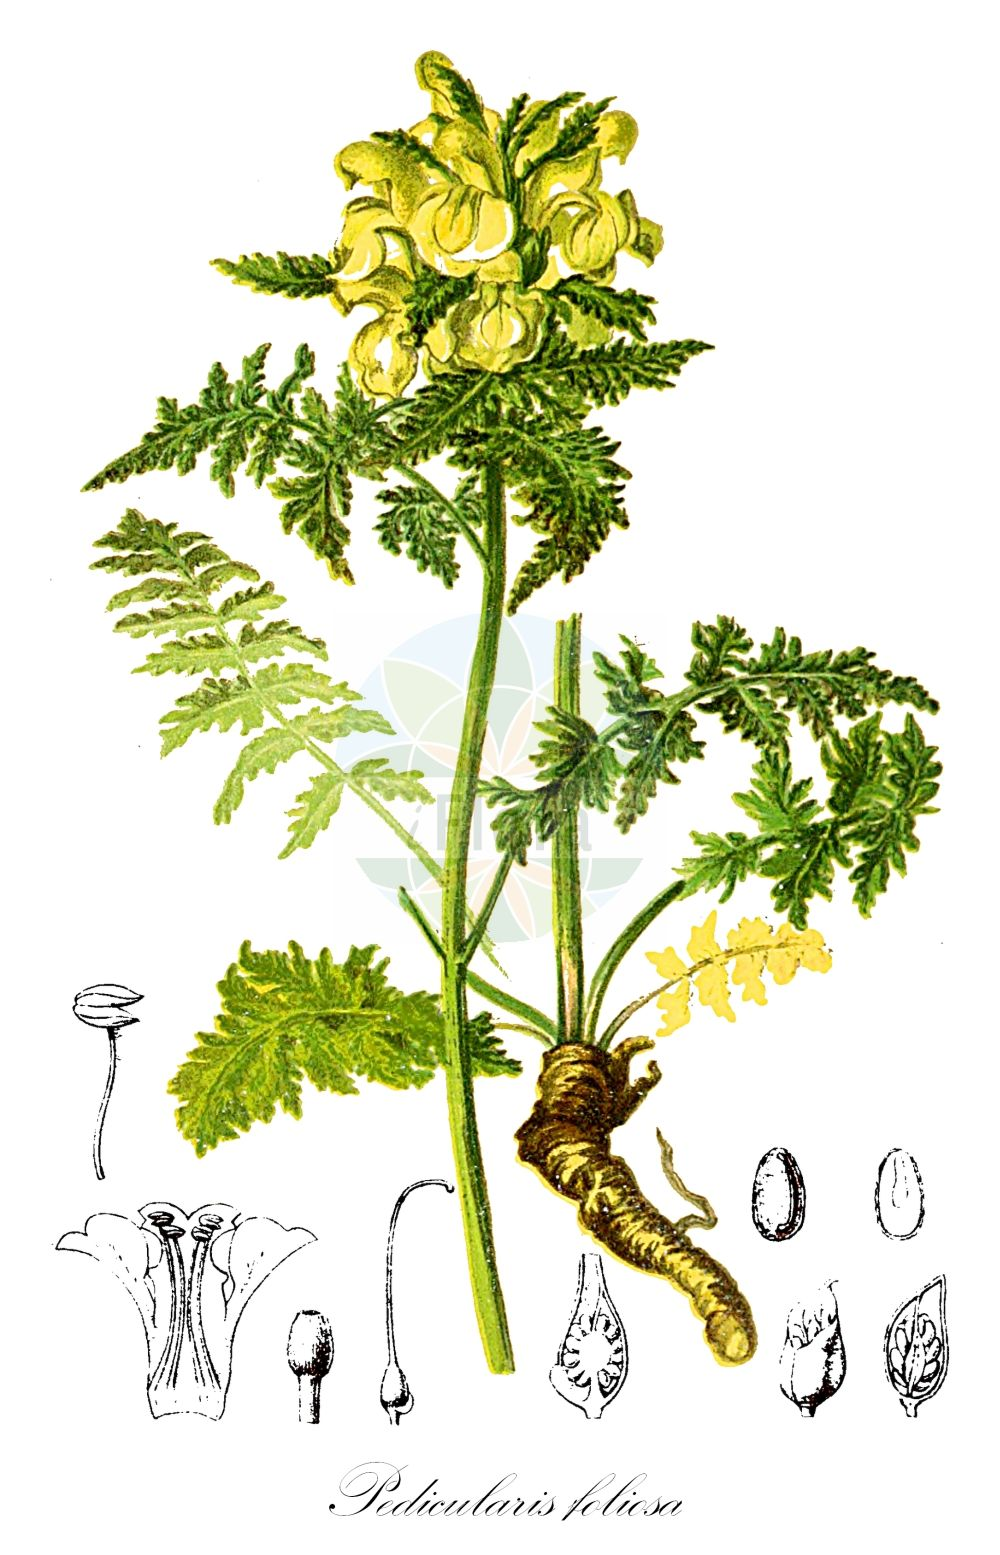 Historische Abbildung von Pedicularis foliosa (Durchblaettertes Laeusekraut - Leafy Lousewort). Das Bild zeigt Blatt, Bluete, Frucht und Same. ---- Historical Drawing of Pedicularis foliosa (Durchblaettertes Laeusekraut - Leafy Lousewort).The image is showing leaf, flower, fruit and seed.(Pedicularis foliosa,Durchblaettertes Laeusekraut,Leafy Lousewort,Vielblaettriges Laeusekraut,Pedicularis,Laeusekraut,Lousewort,Orobanchaceae,Sommerwurzgewaechse,Broomrape family,Blatt,Bluete,Frucht,Same,leaf,flower,fruit,seed,Hartinger & von Dalla Torre (1806f))